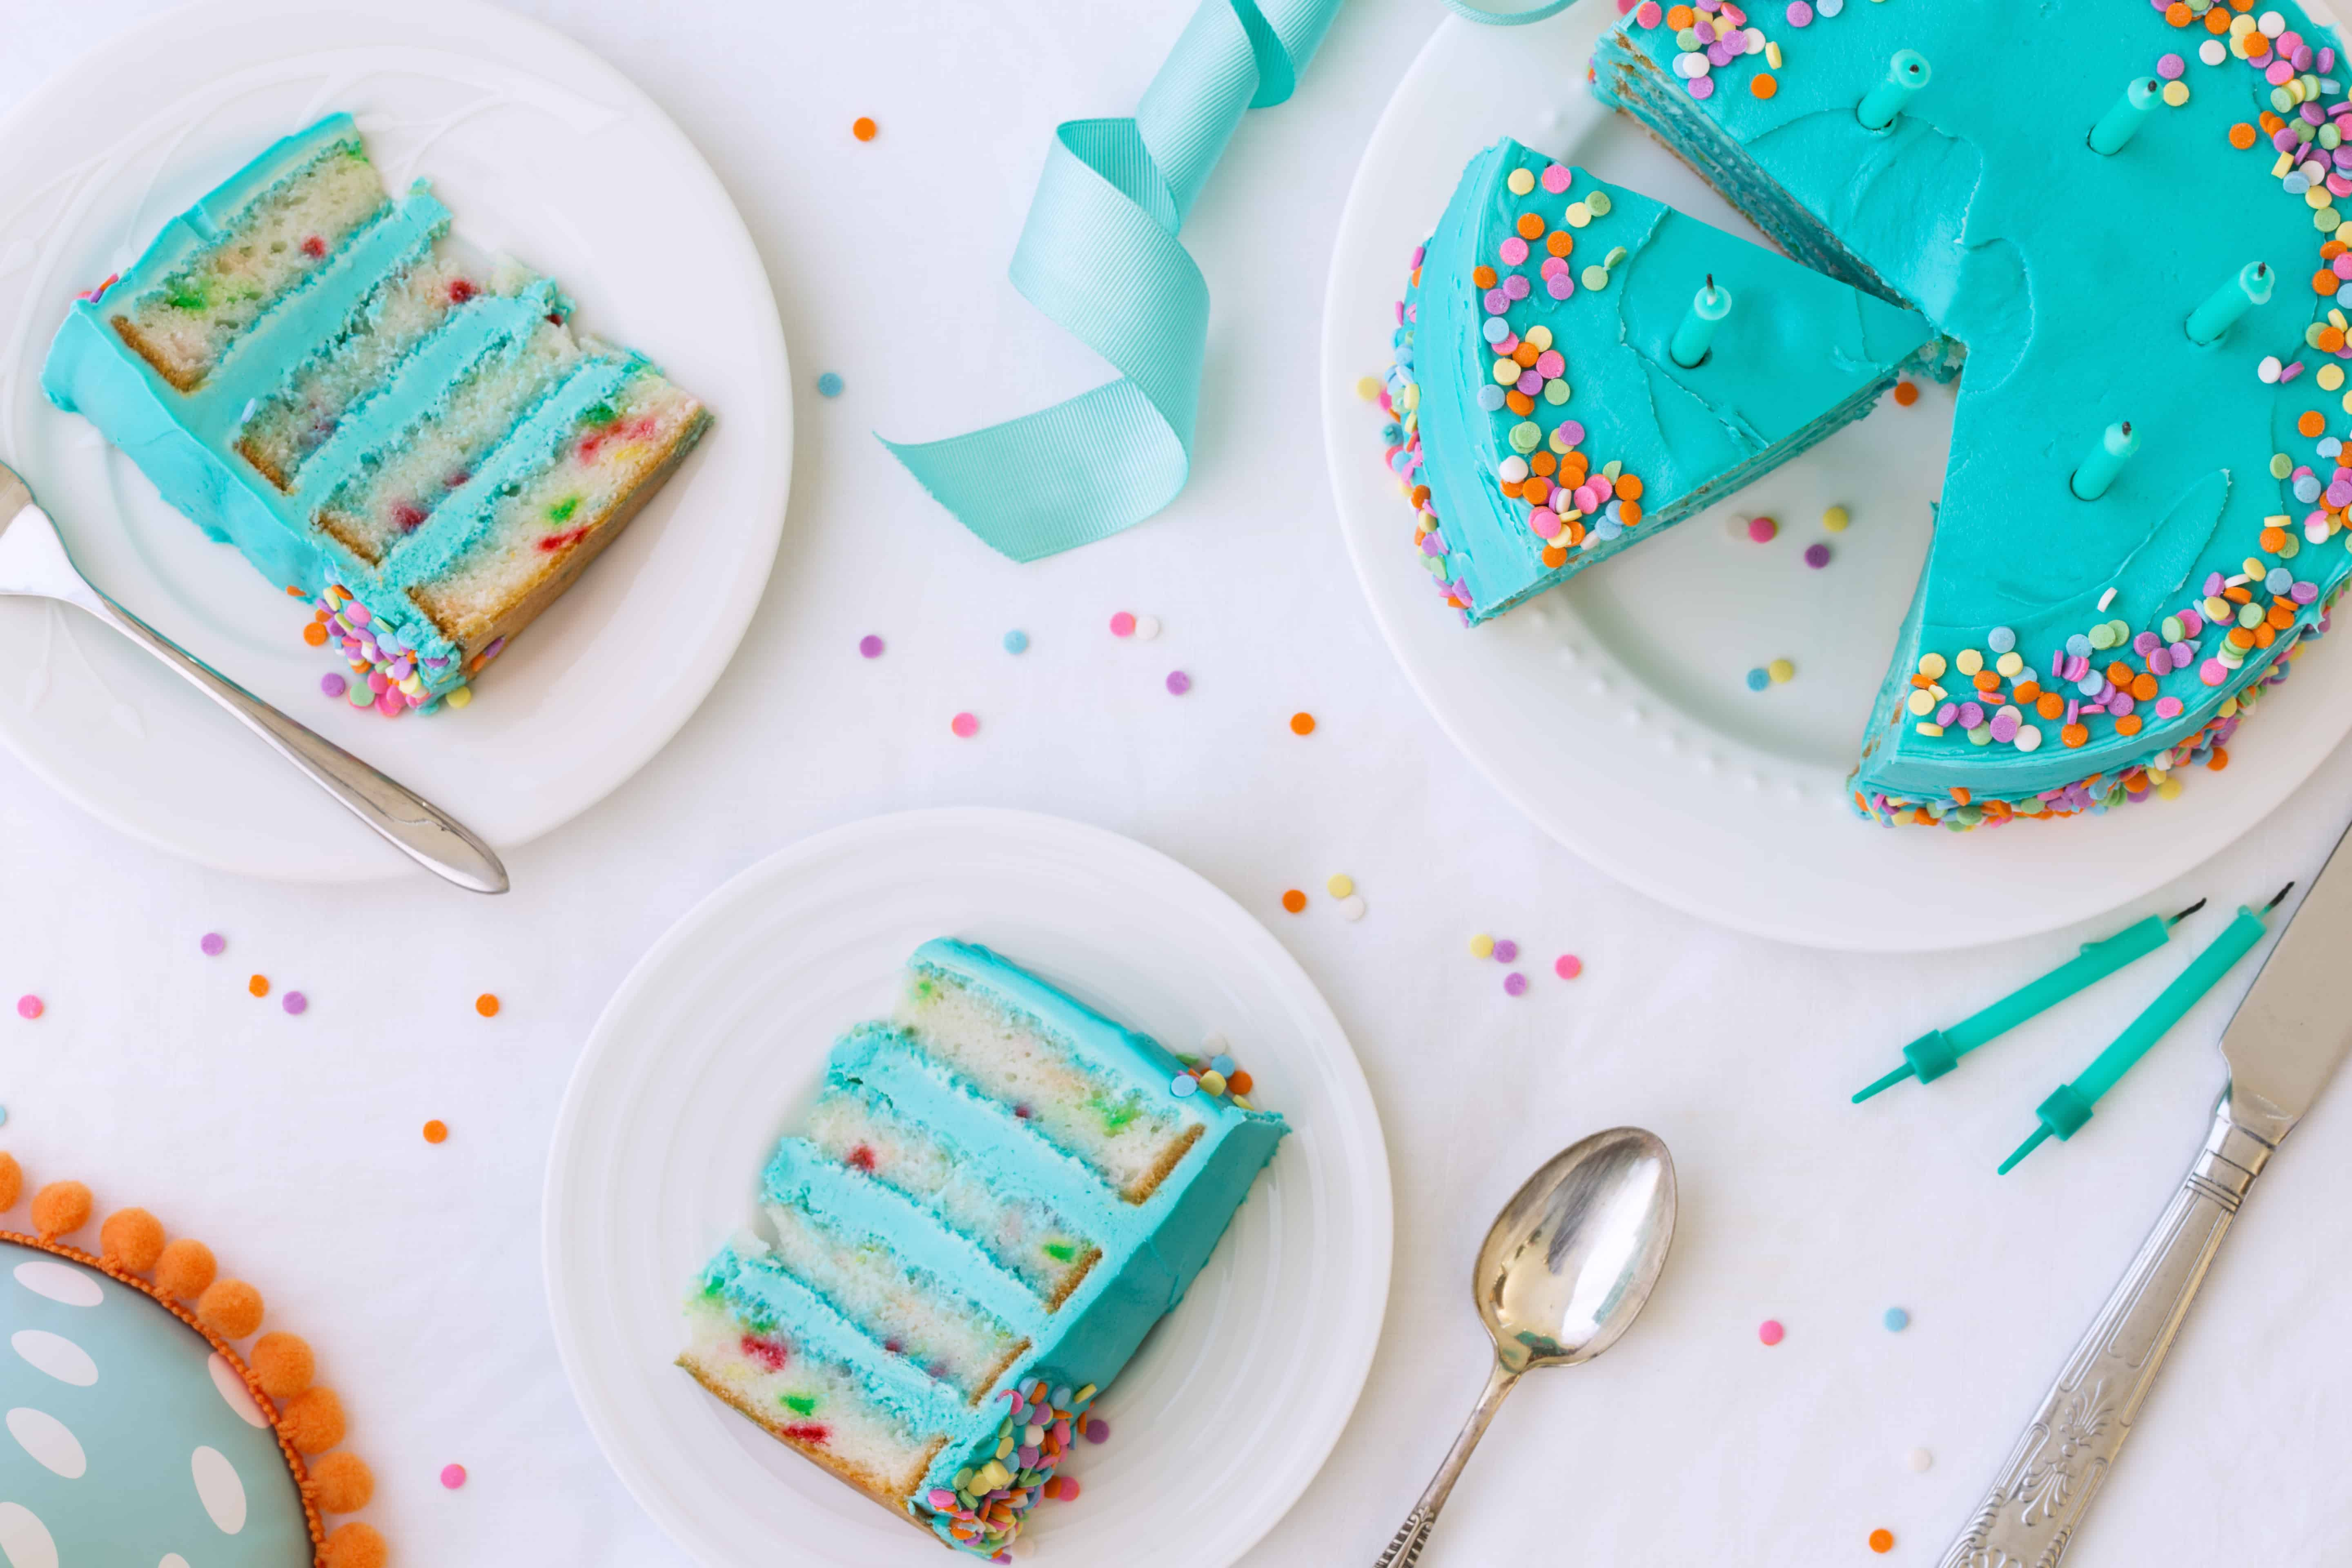 Royal Blue Frosting Tips and Tricks